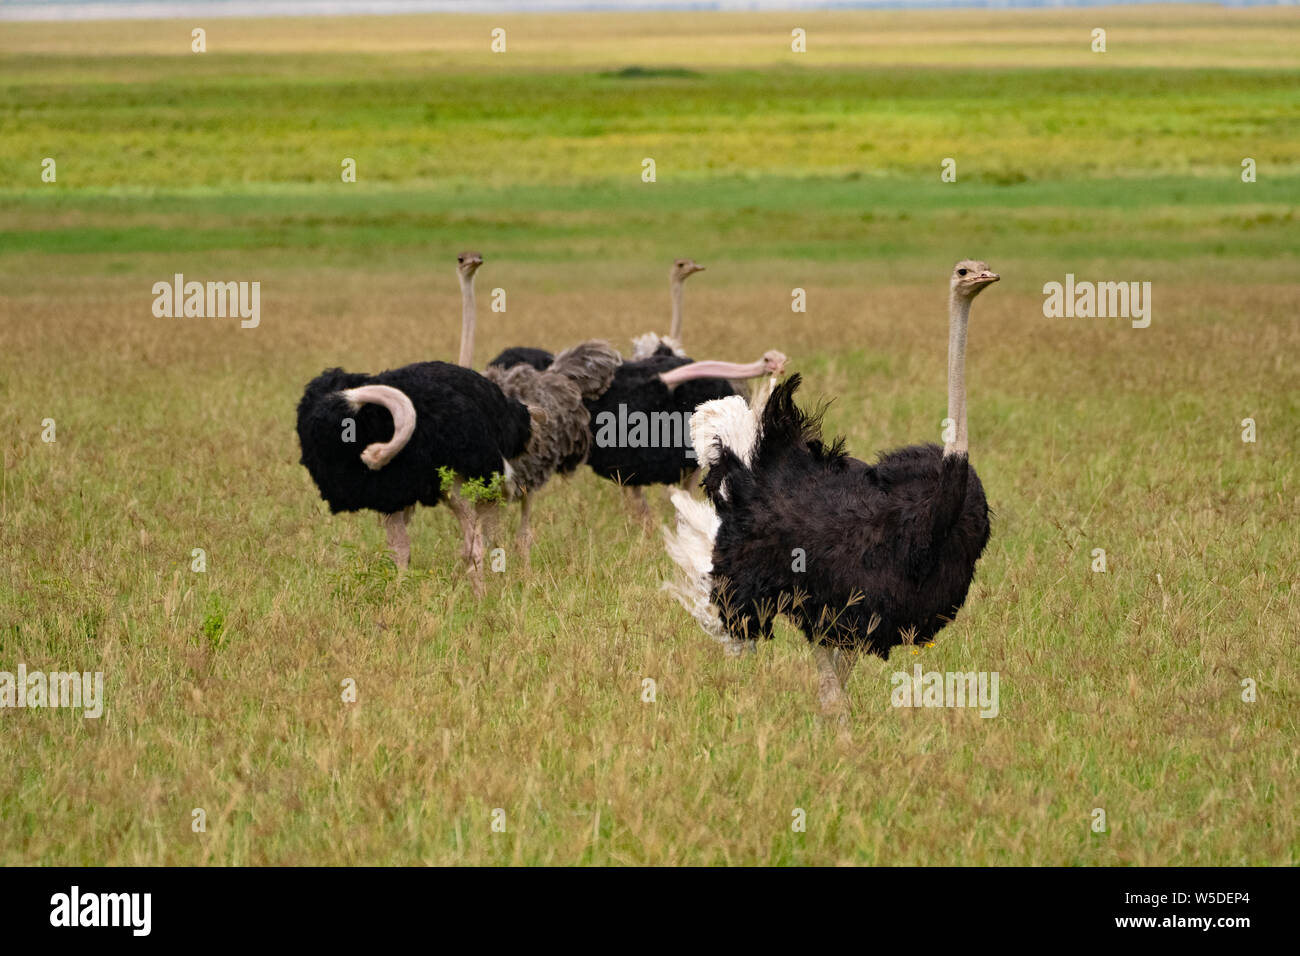 A family of wild ostriches (Struthio camelus). This group consists of females and a male. The ostrich, a flightless bird, is the world's largest and t Stock Photo